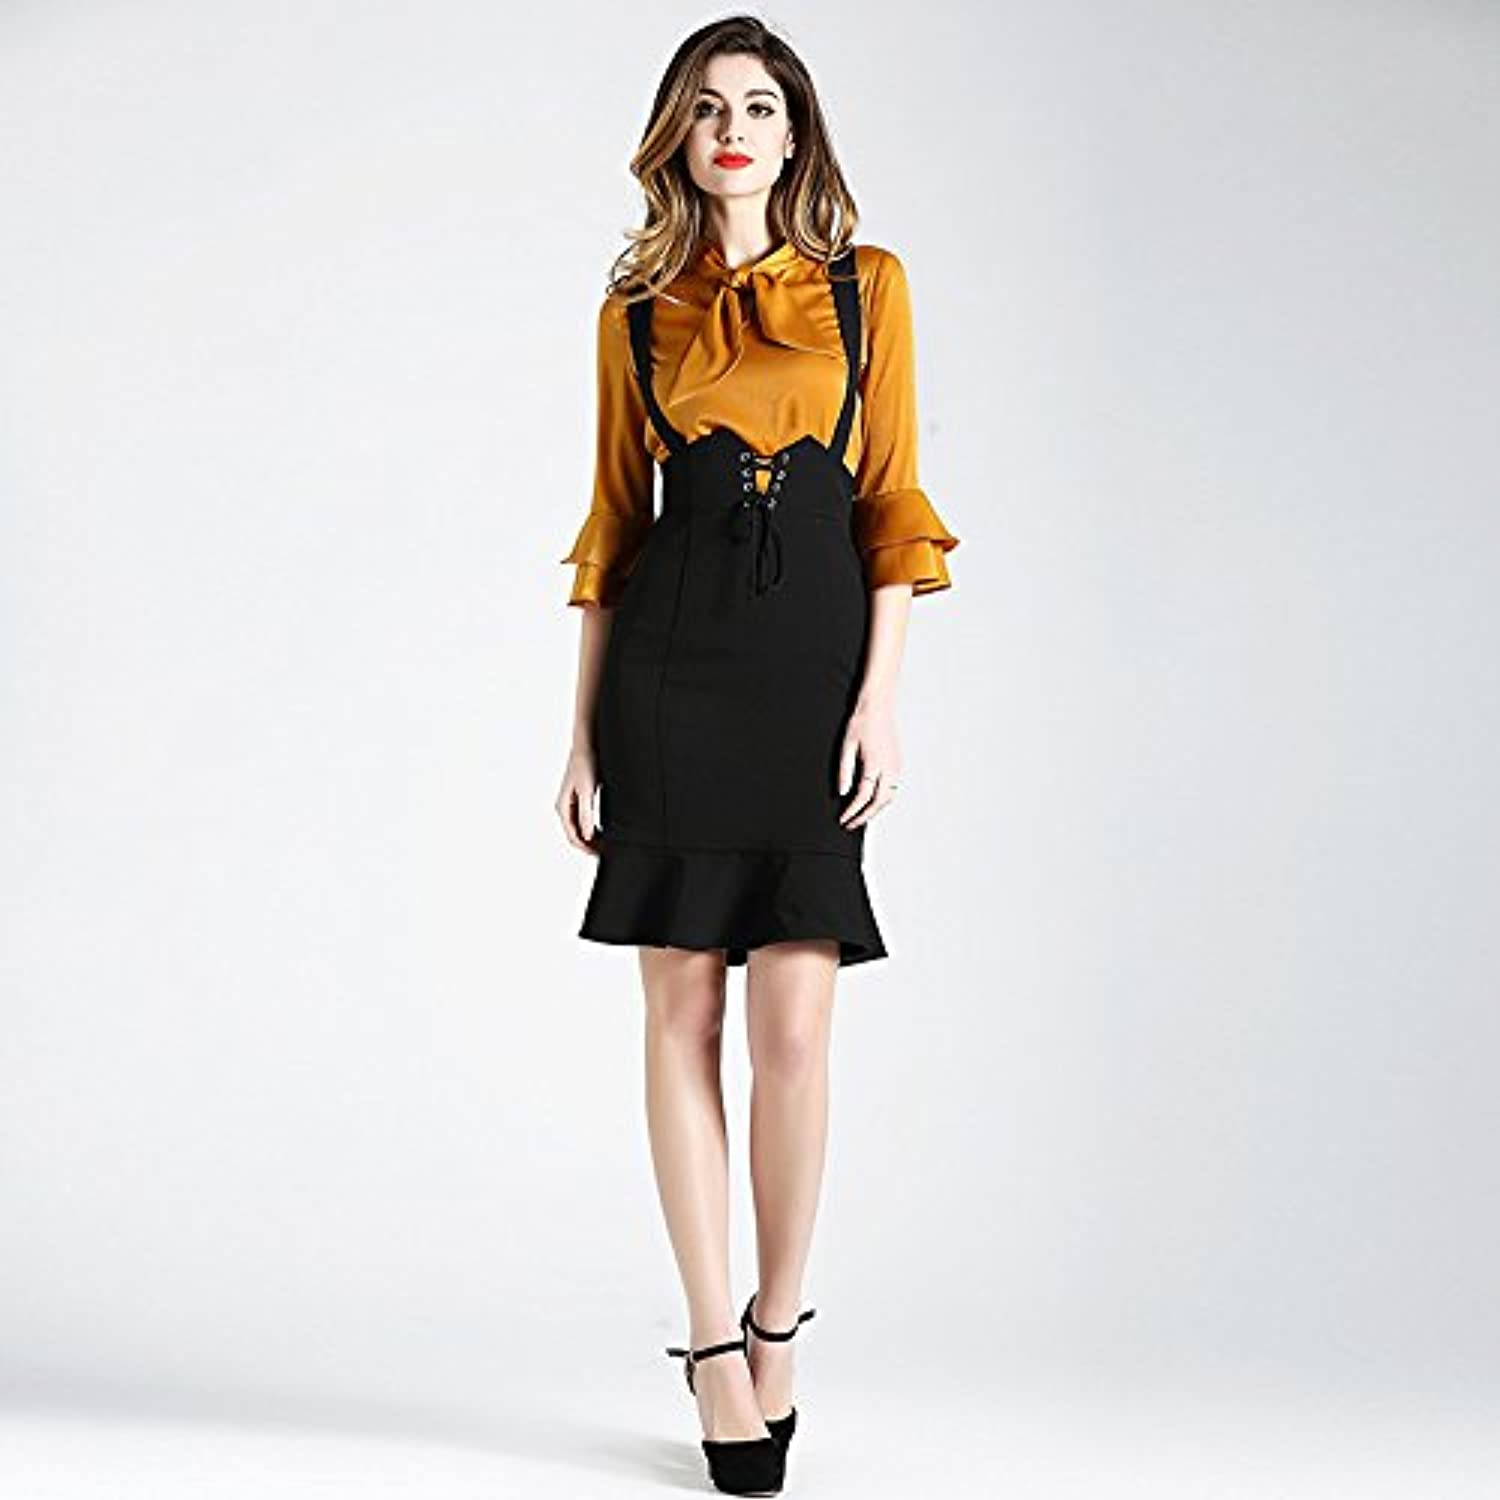 ZHUDJ 2 Tie Shirt With Two Pieces Of Jacket And Buttocks Dress